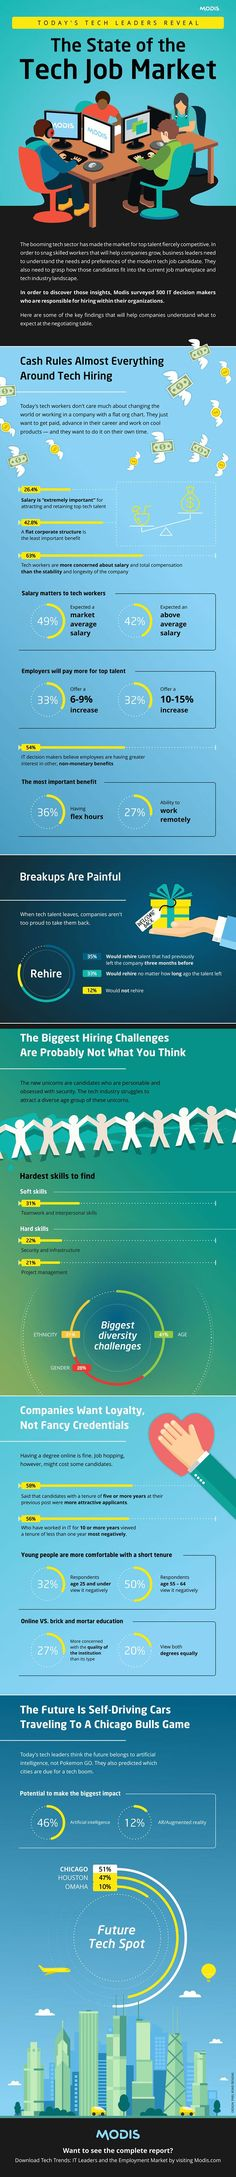 The State of the Tech Job Market #Infographic #Business #Tech http://itz-my.com